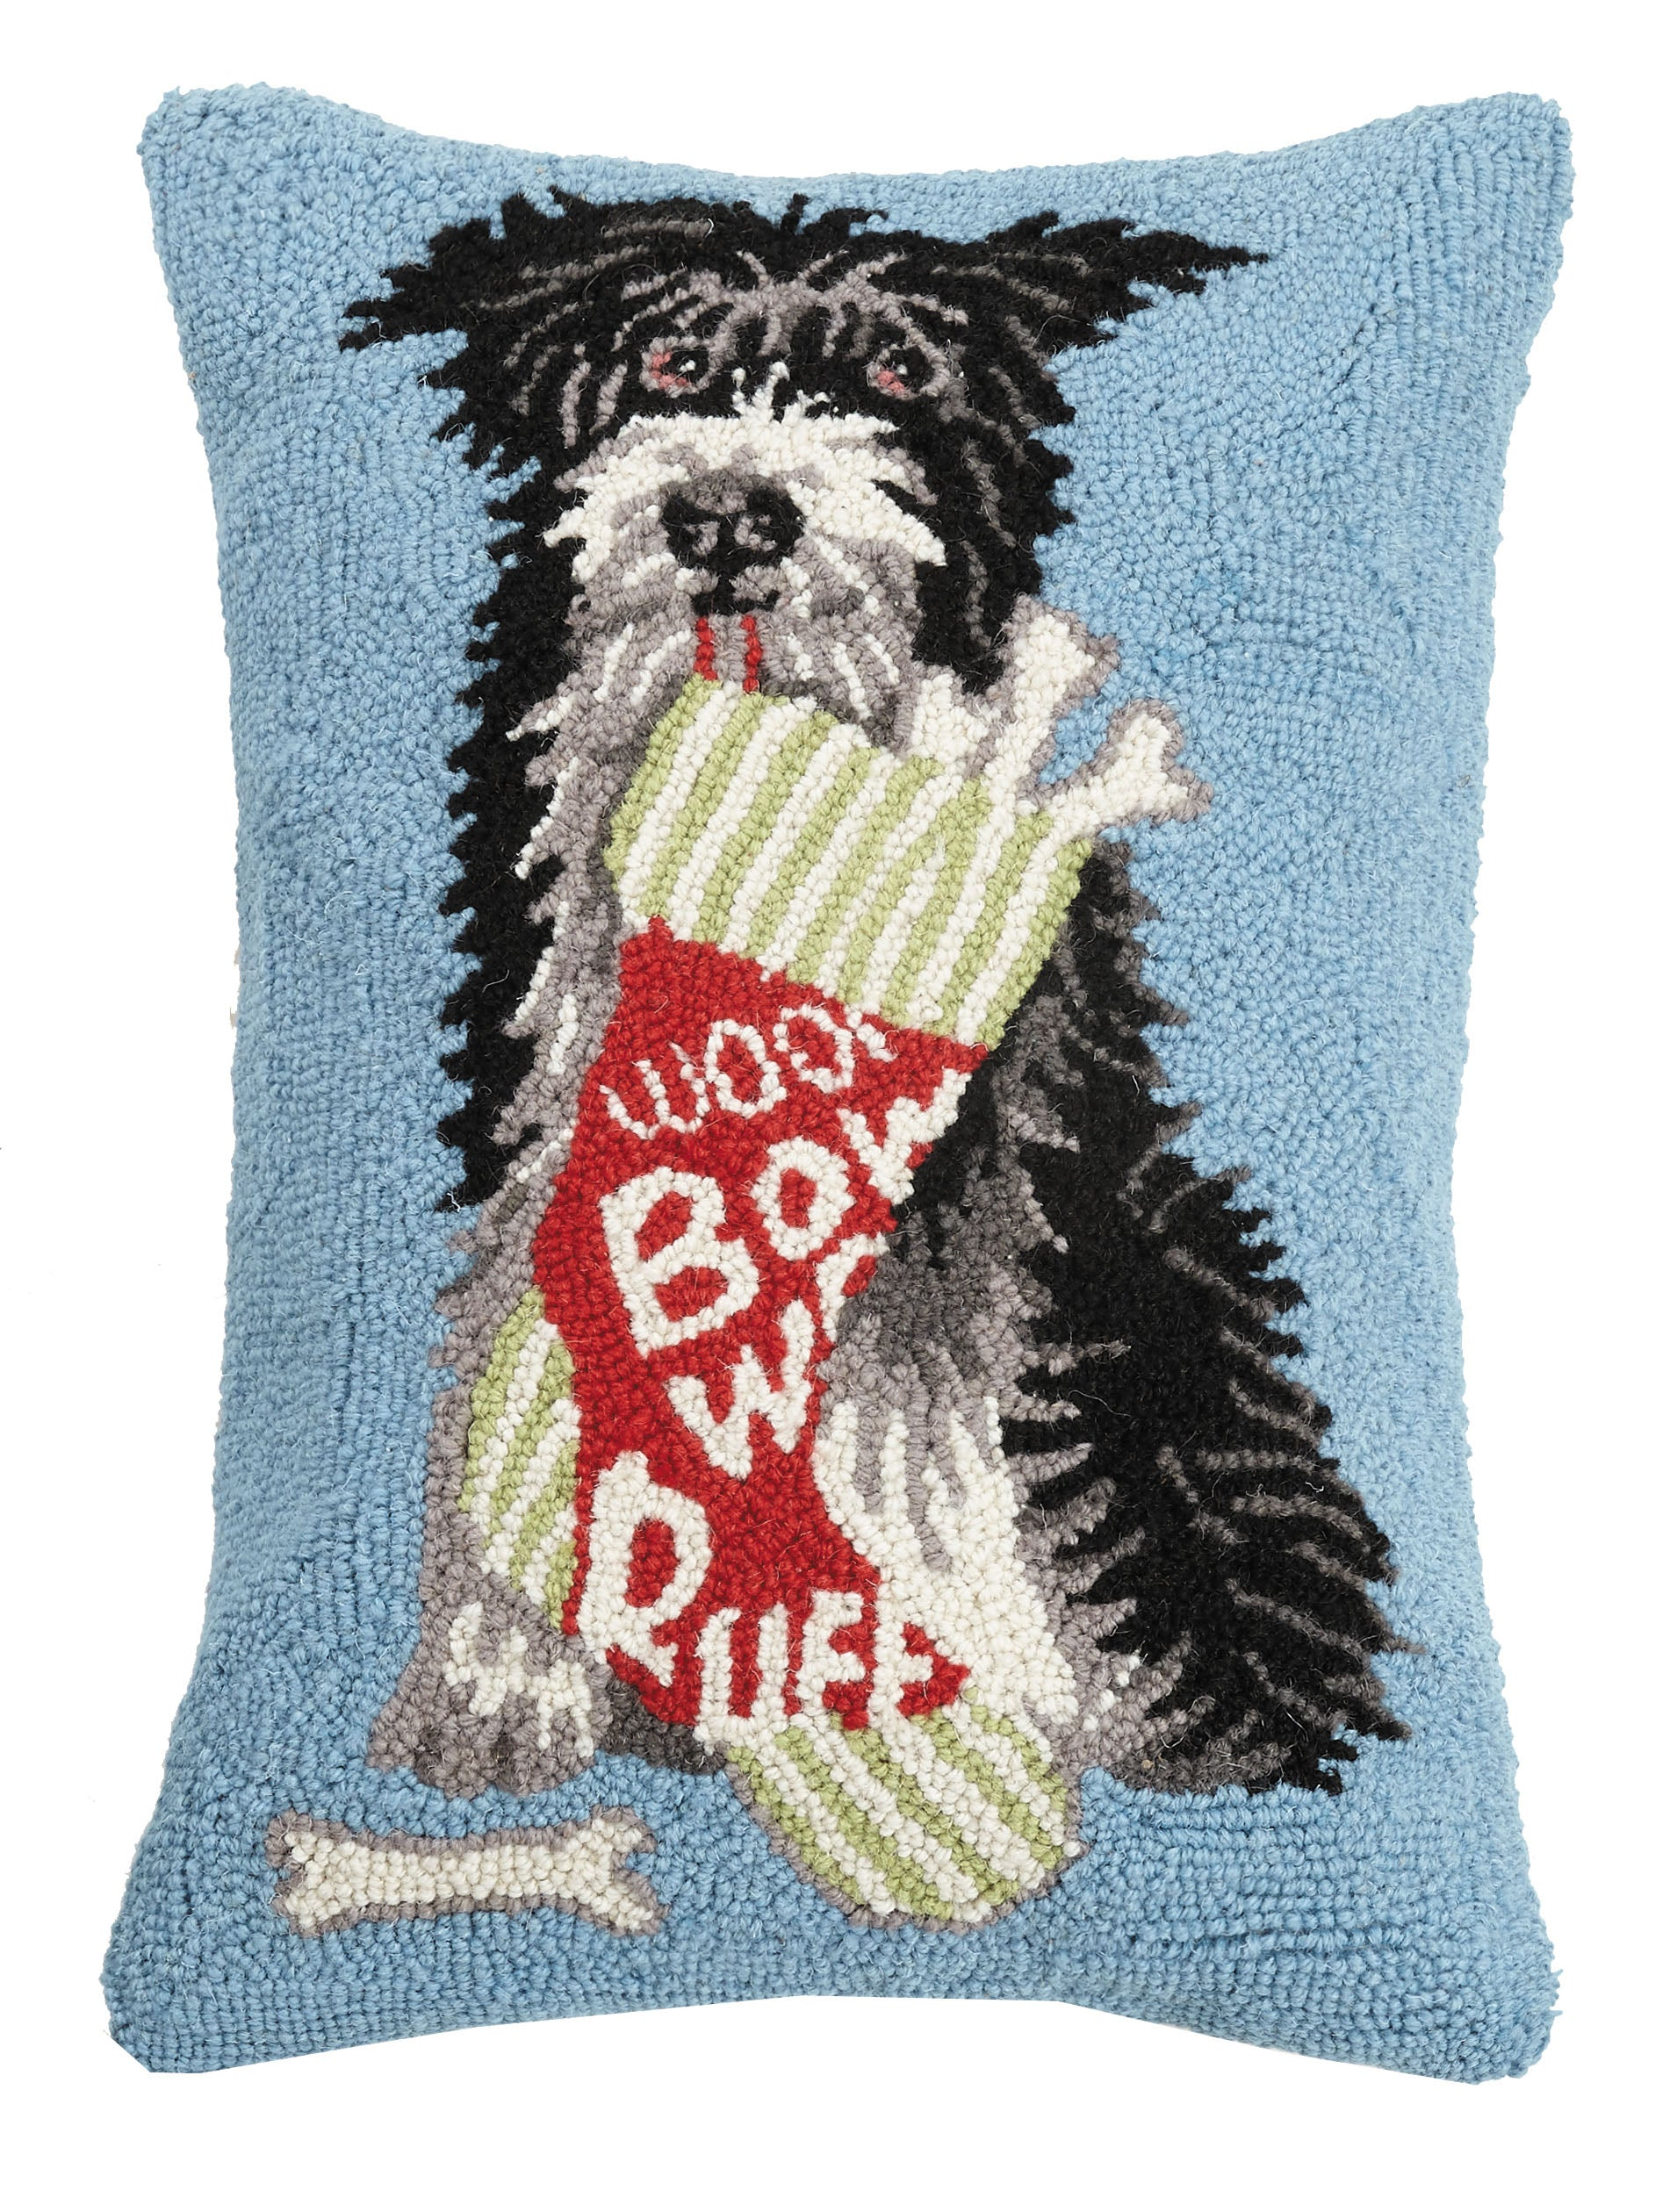 Scruffy's Christmas Stocking Treats Hooked Pillow